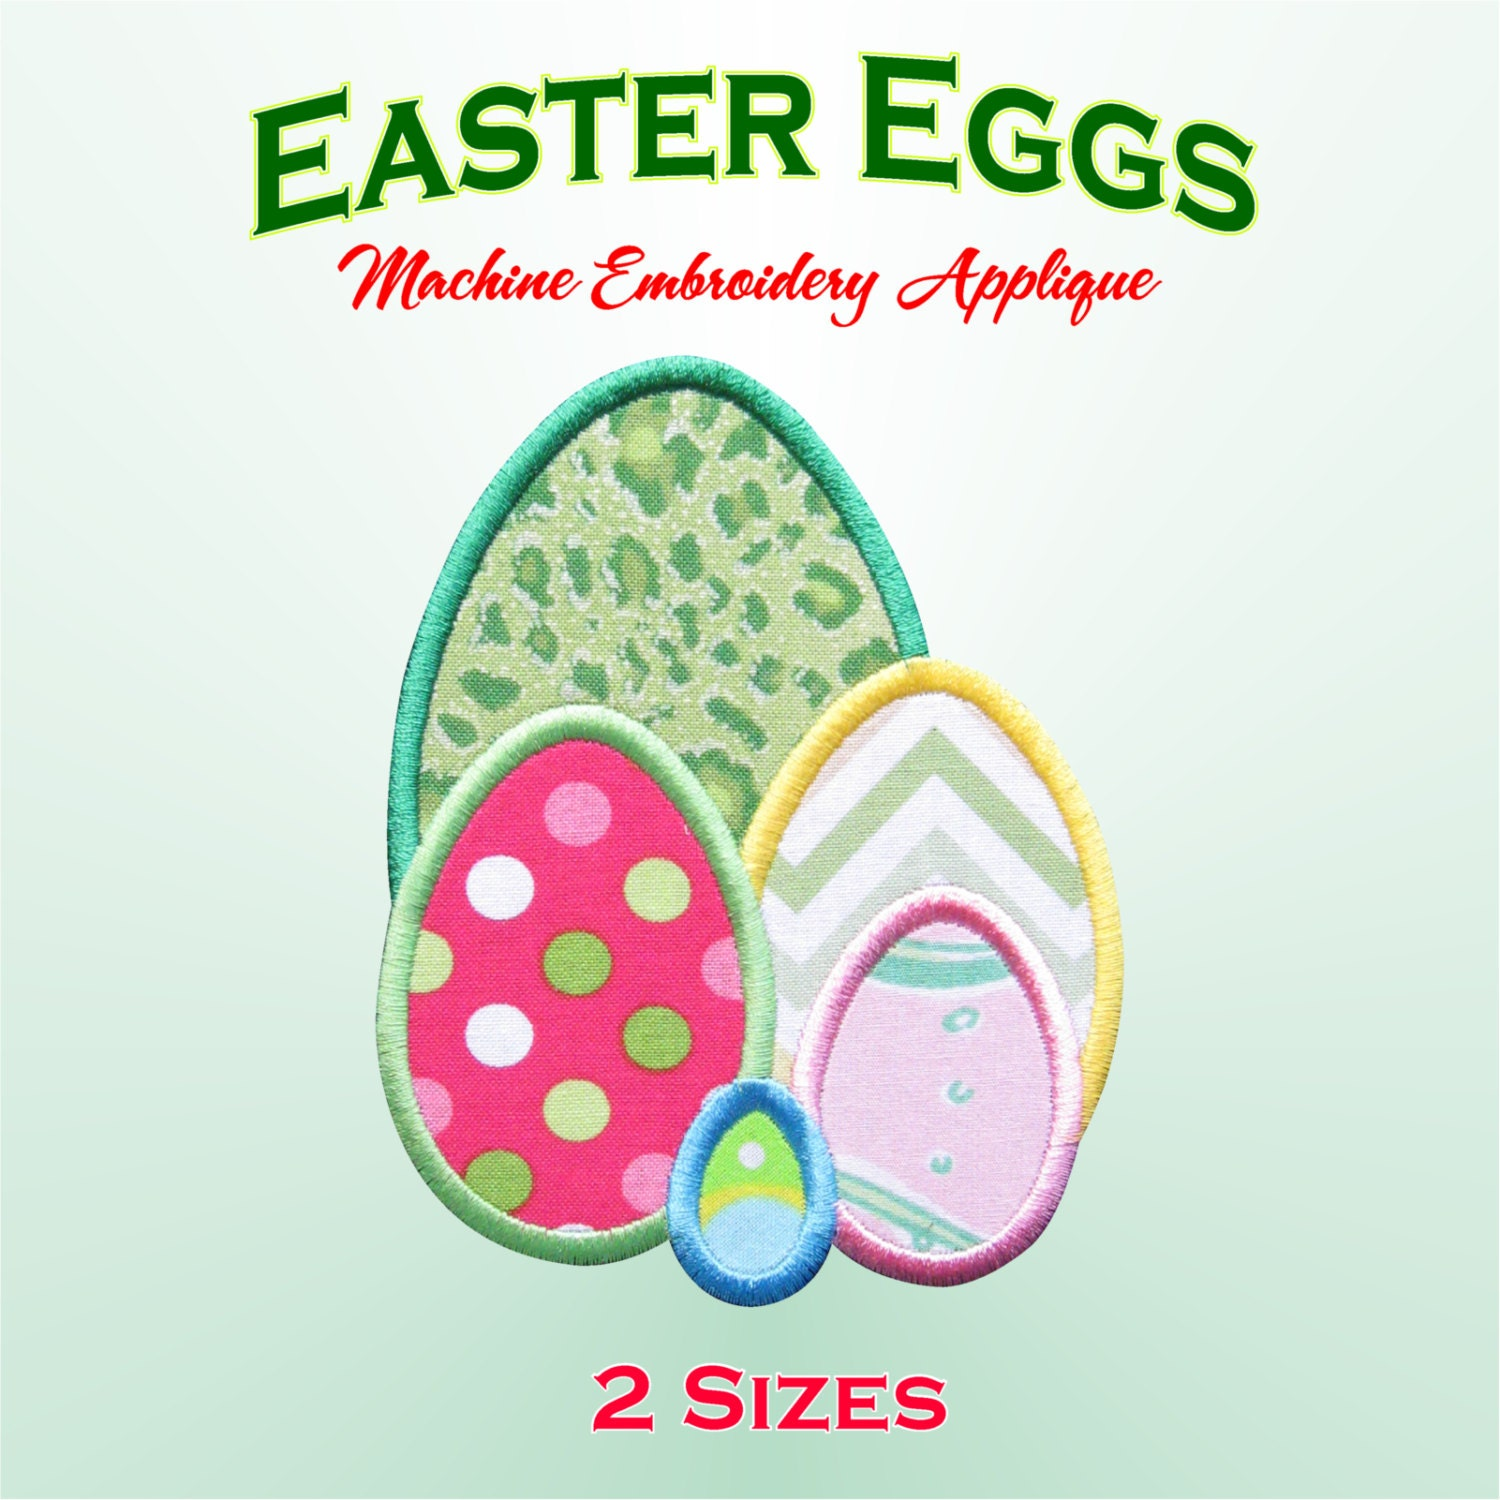 Easter eggs machine embroidery applique by ediesdesigns on